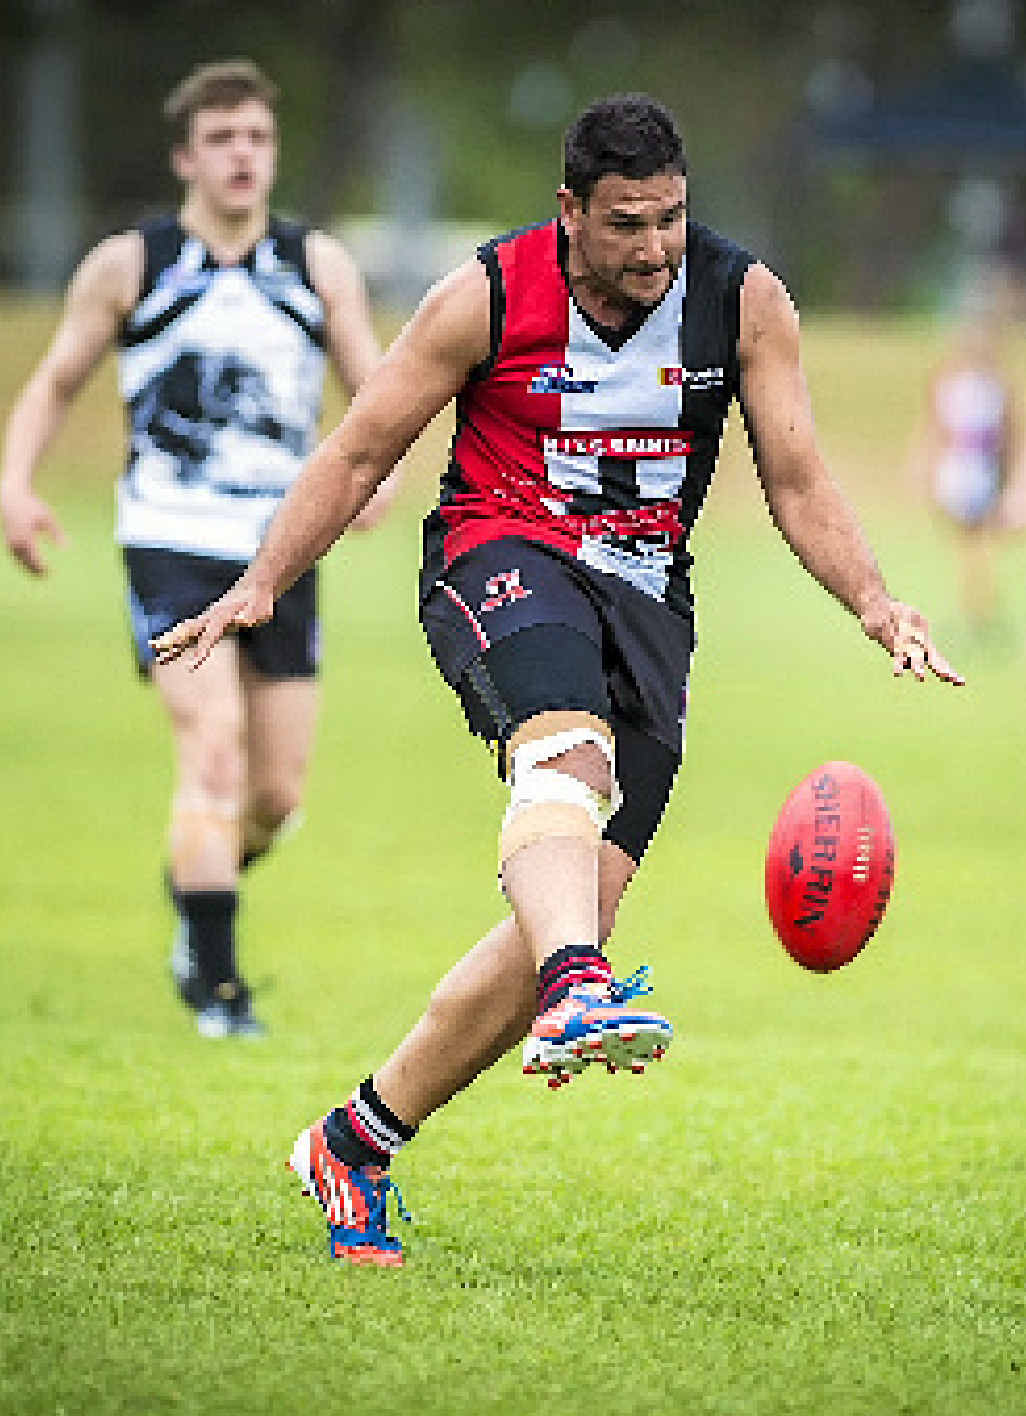 ON THE RUN: BITS' Damien Lyon during the BITS vs Panthers match.